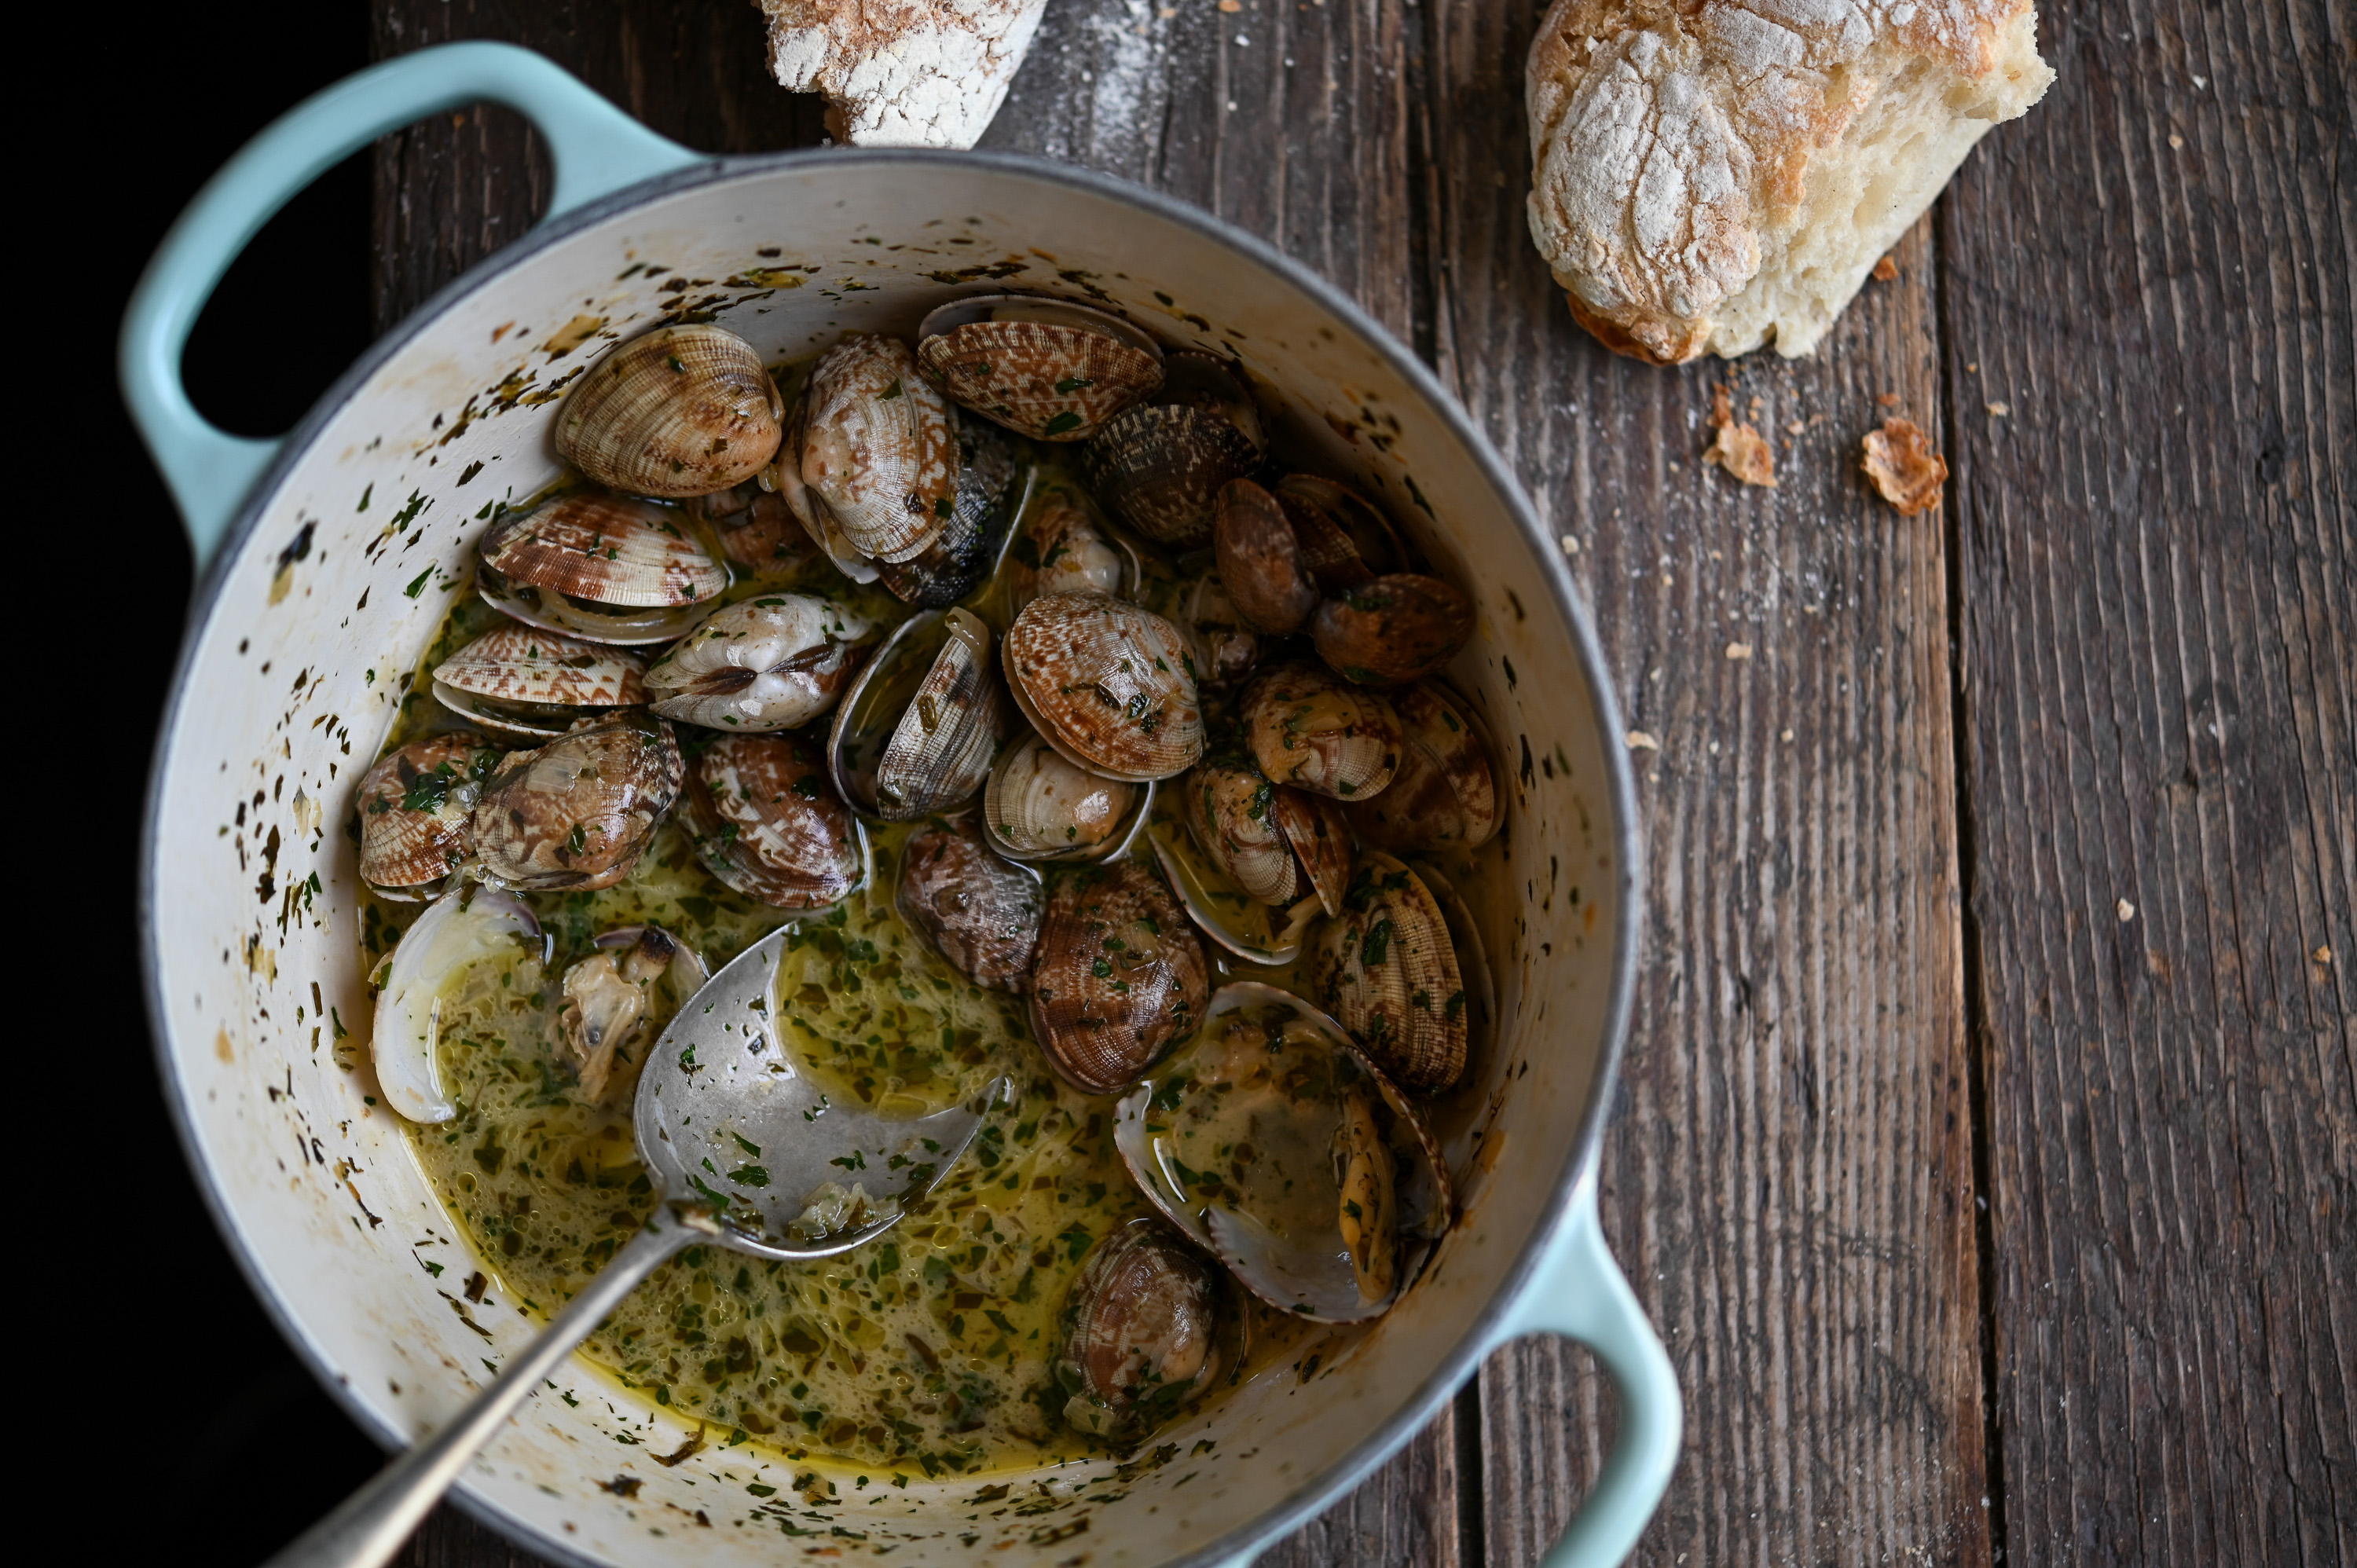 CLAMS IN SALSA VERDE